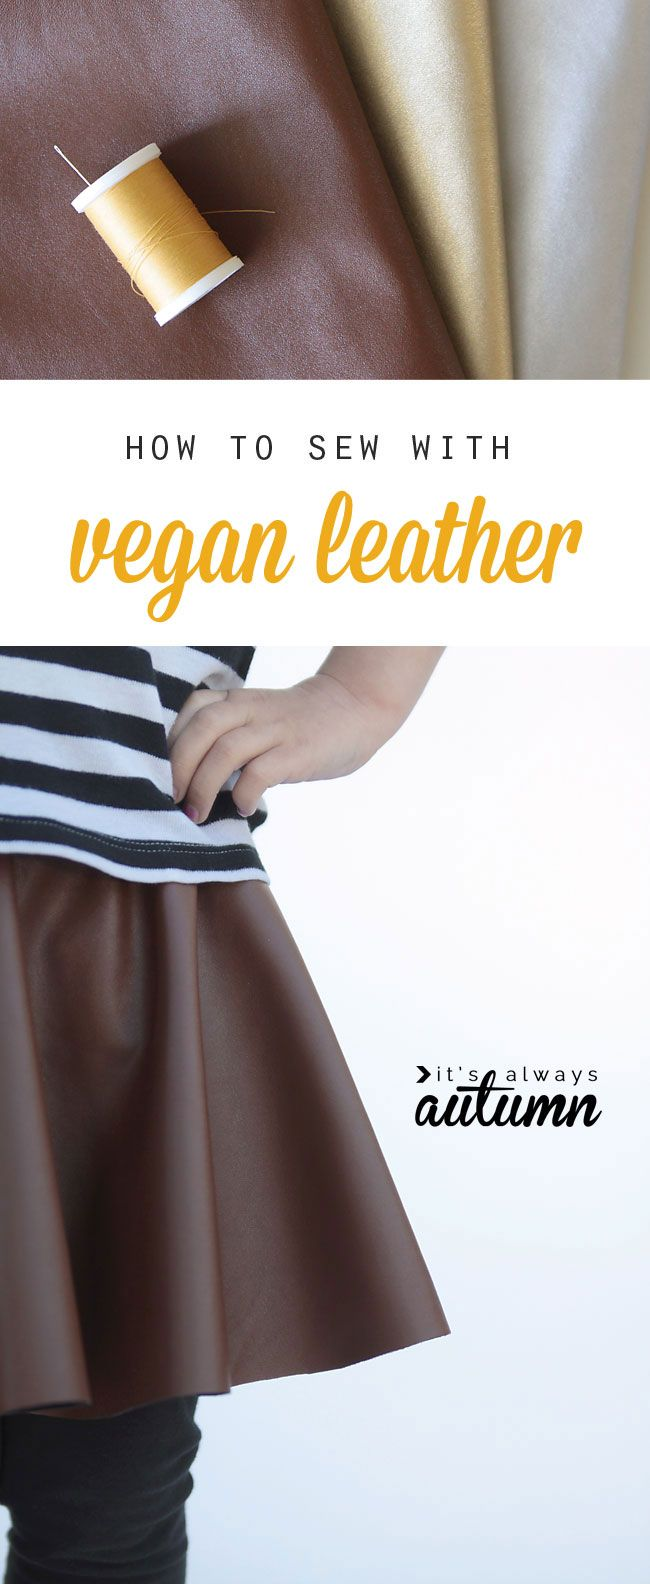 vegan leather - looks fun to sew with! everything you need to know about how to sew with faux vegan leather.